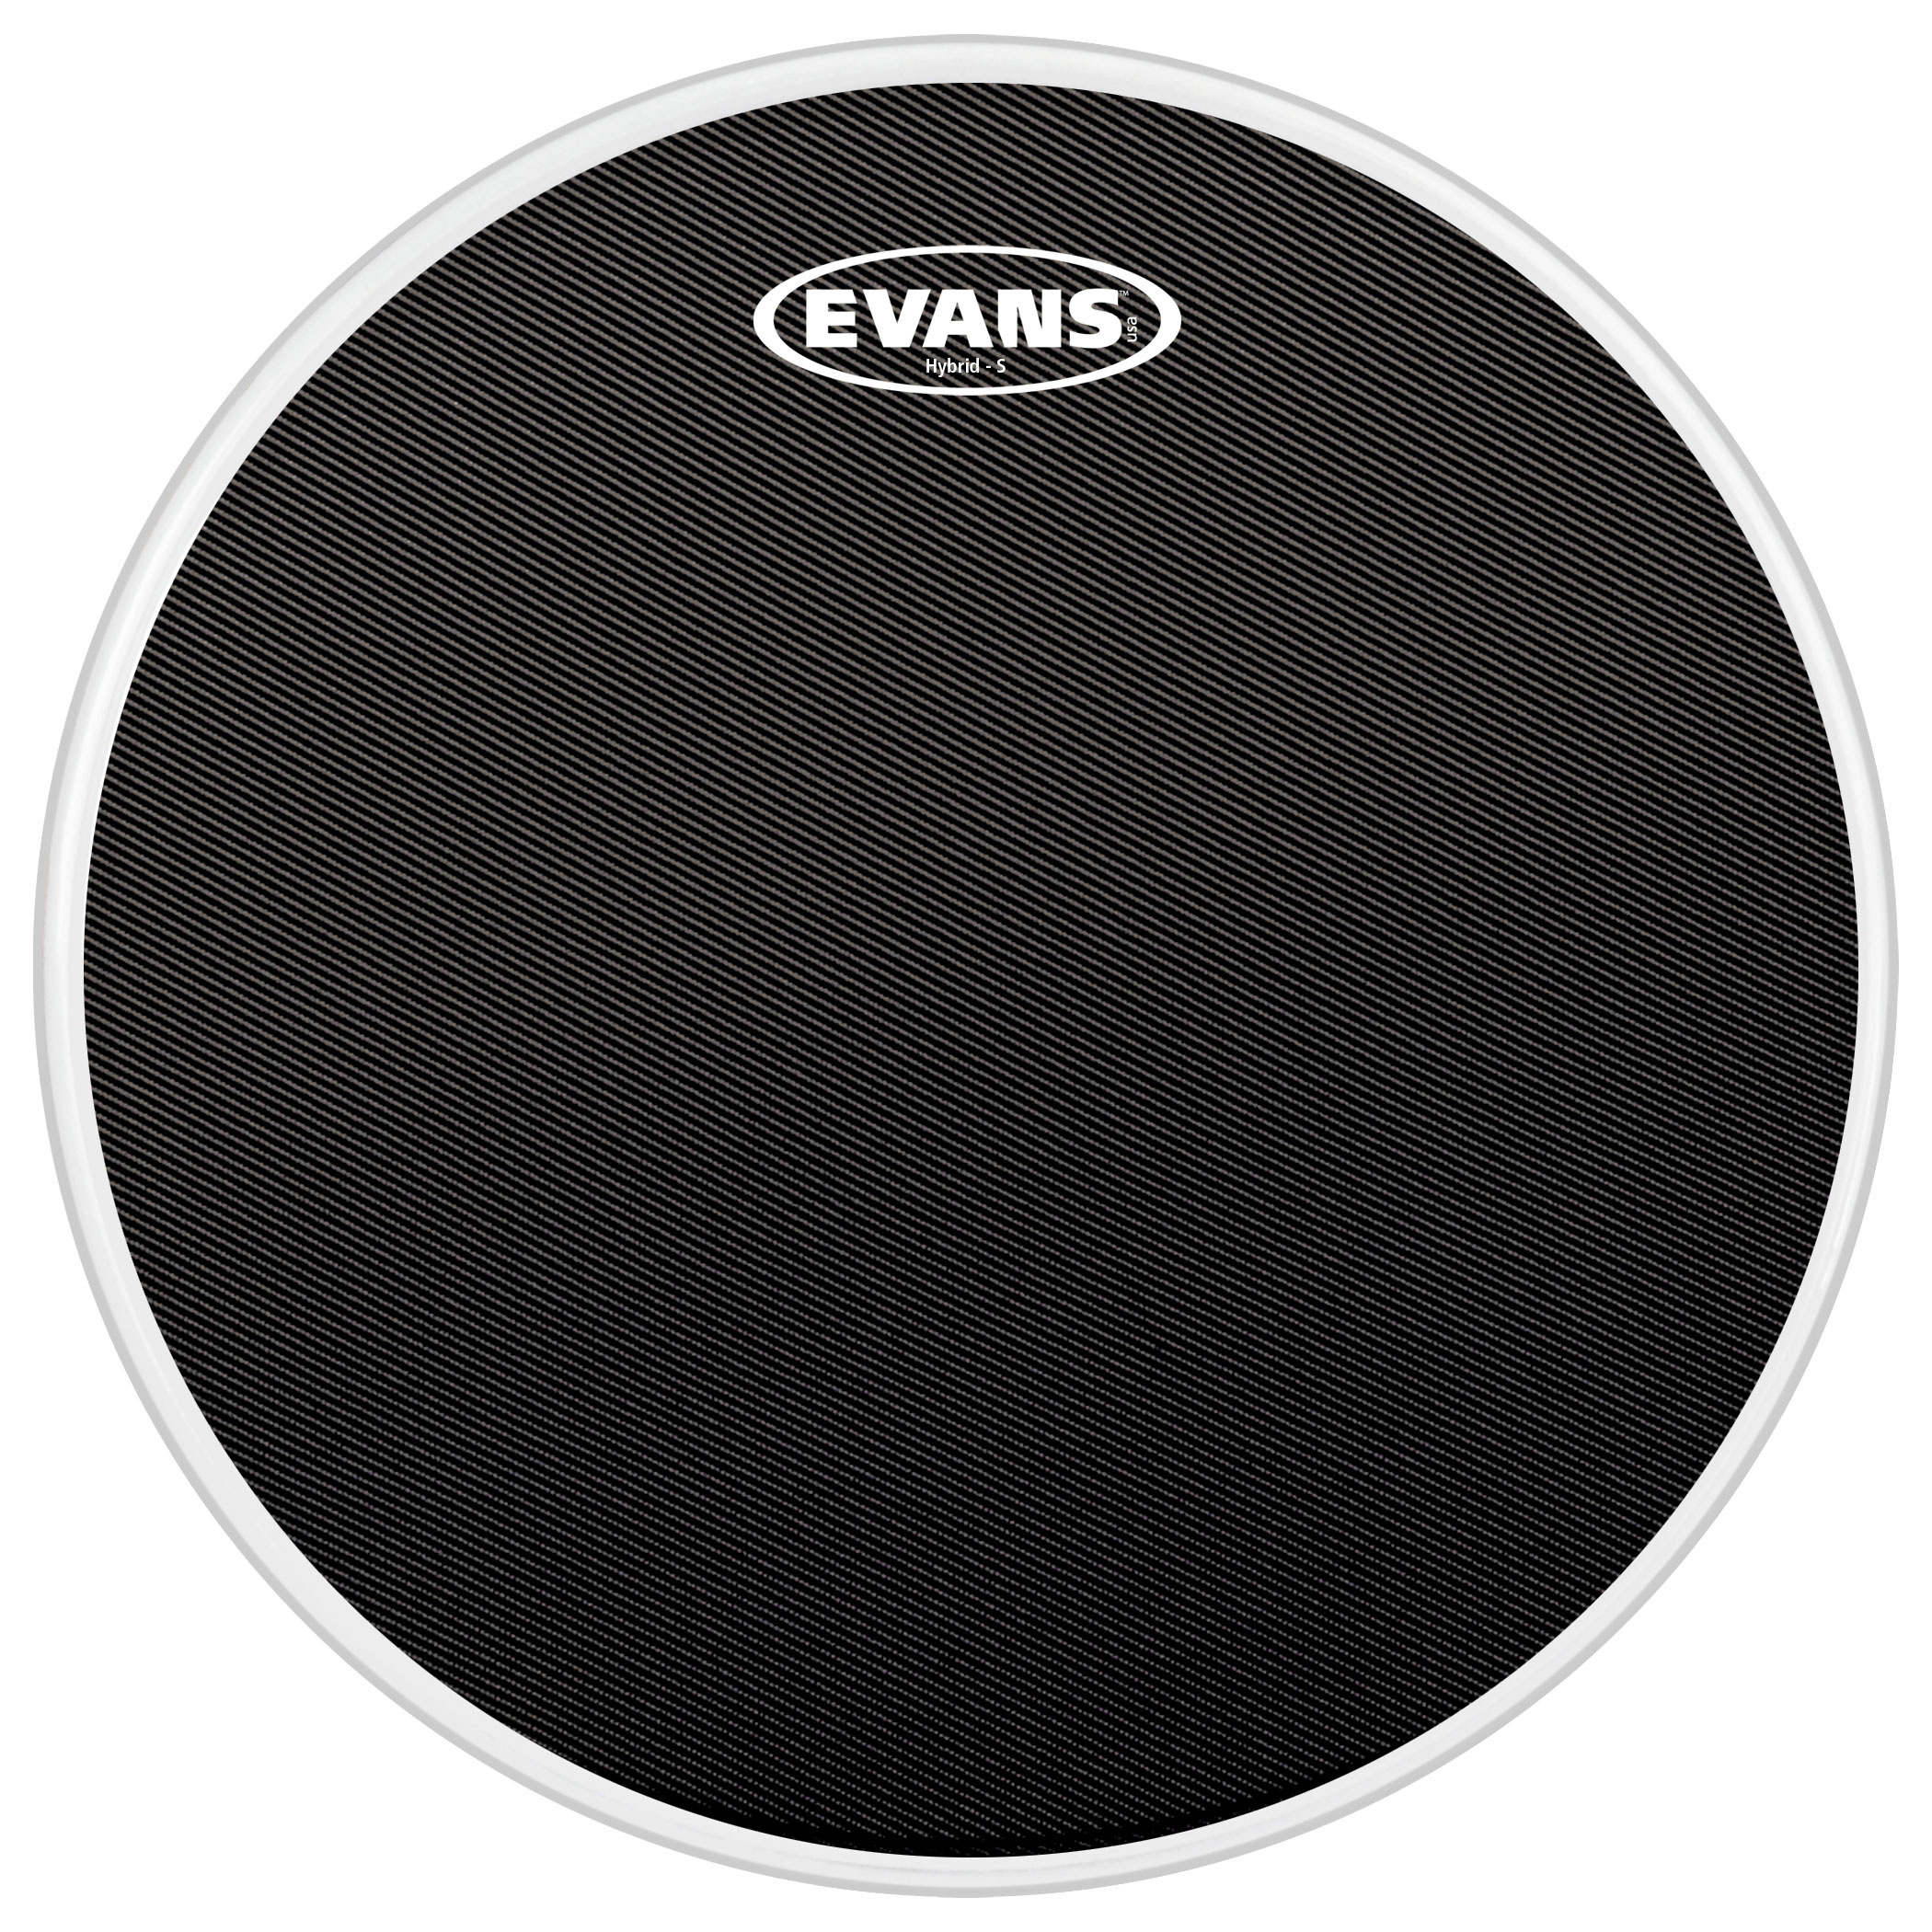 "Evans 14"" Hybrid-S Marching Snare Top Head"